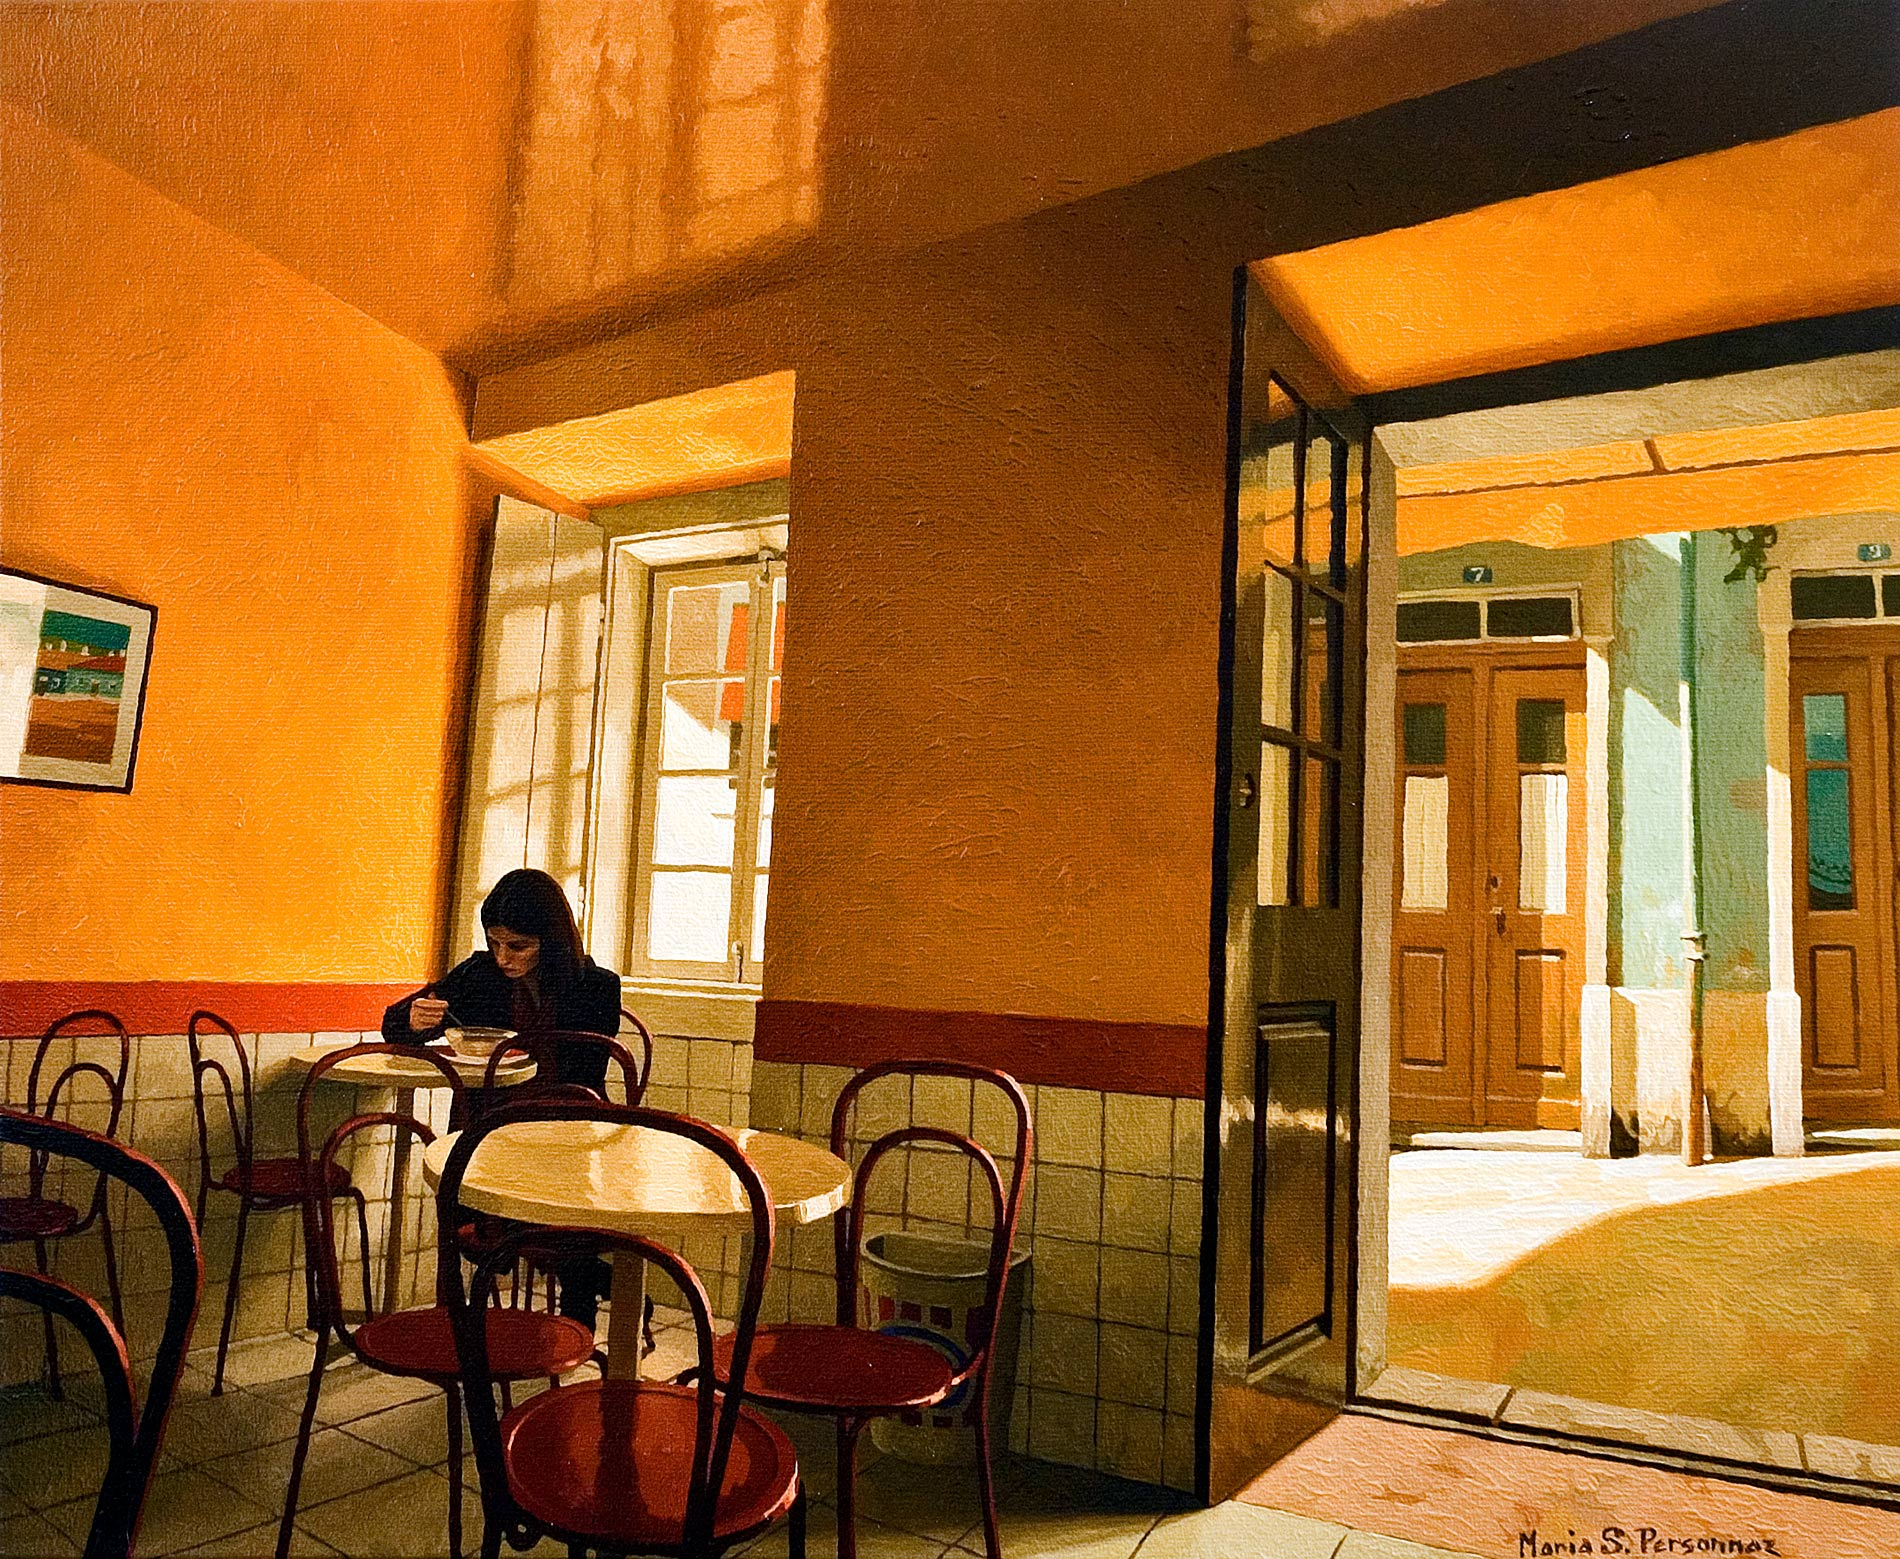 Cafeteria with yellow walls, Portugal